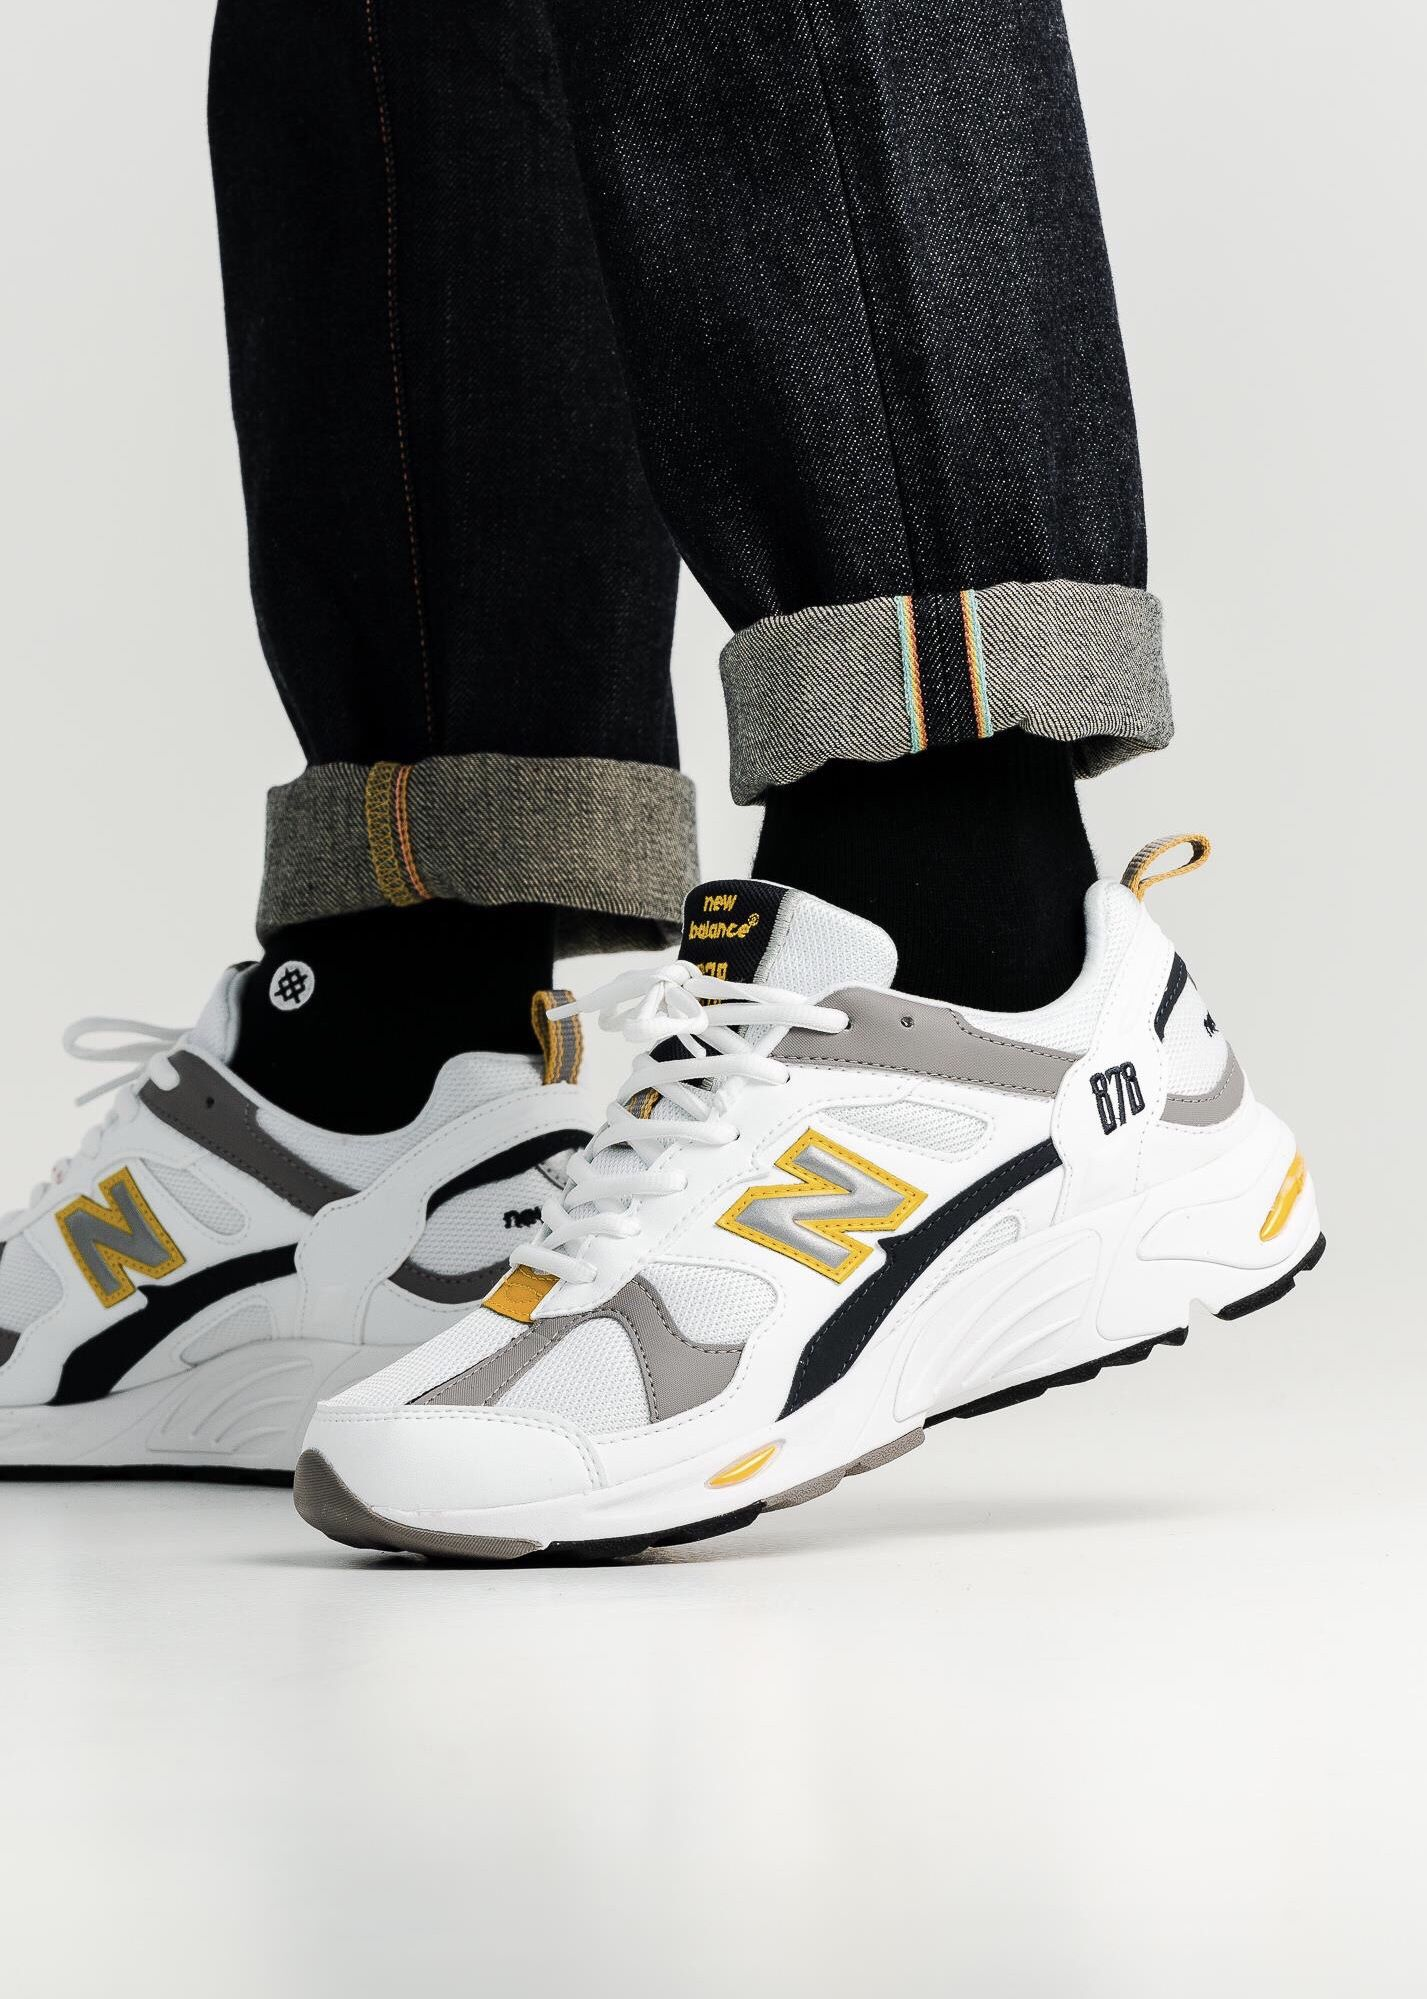 New Balance 878 | swag in 2019 | New balance, Sneakers, Swag